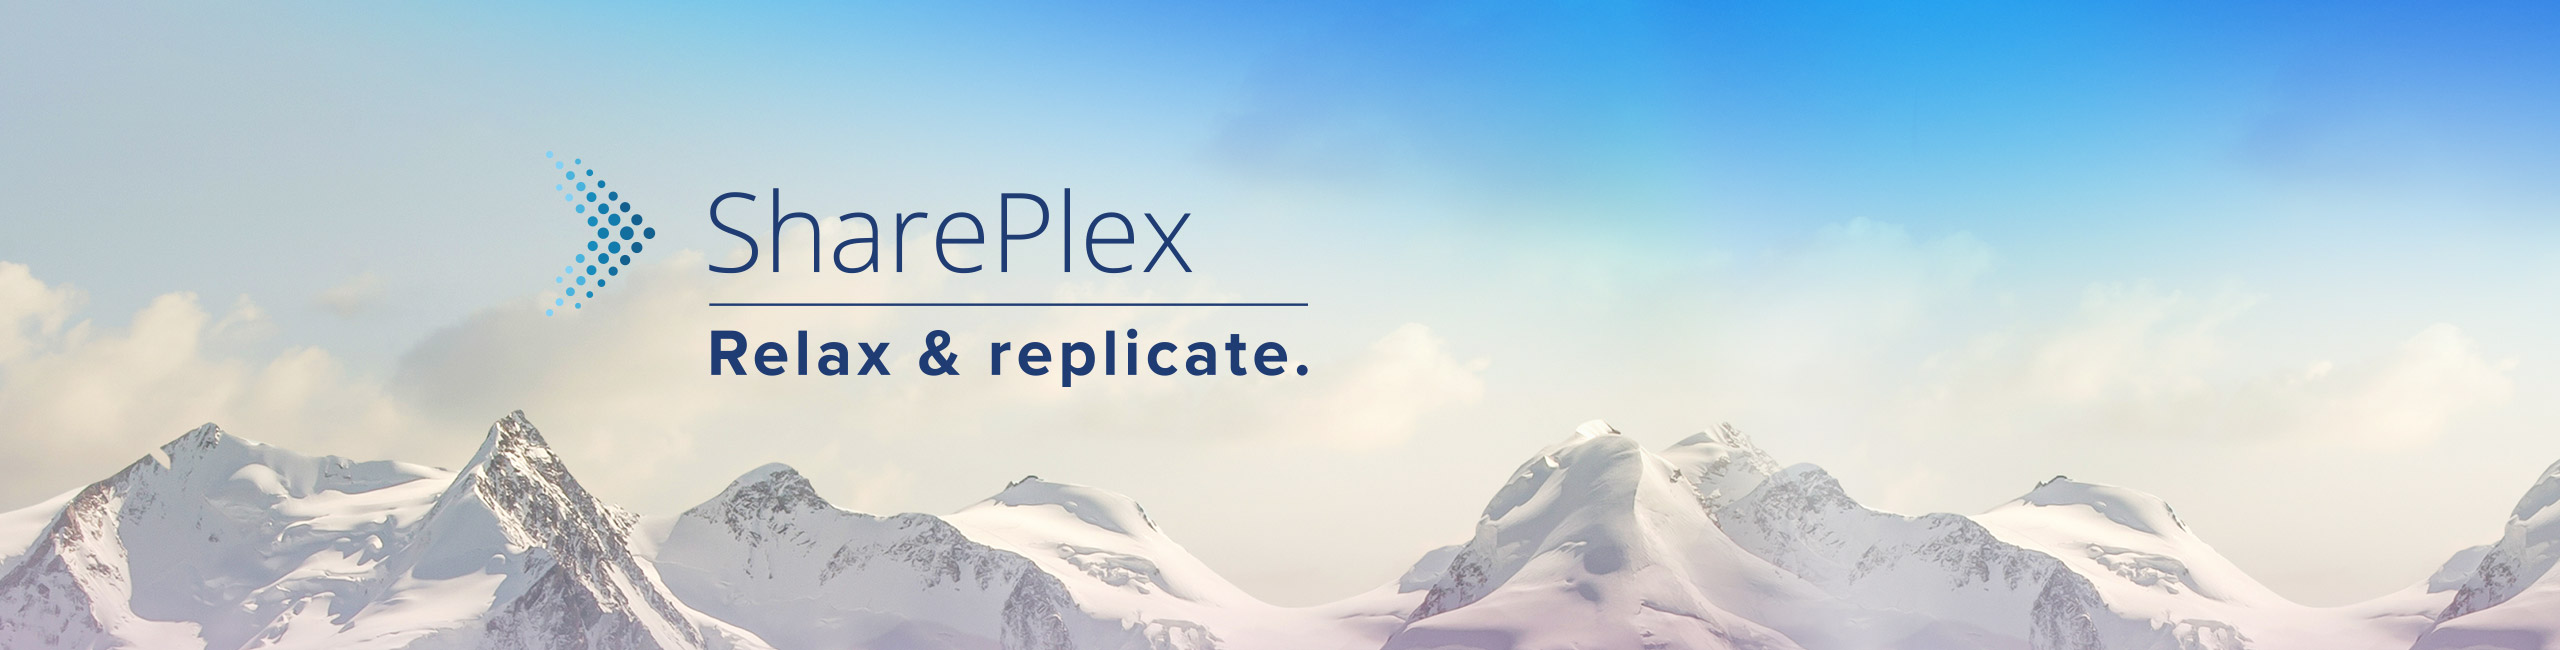 SharePlex Relax & replicate. FR